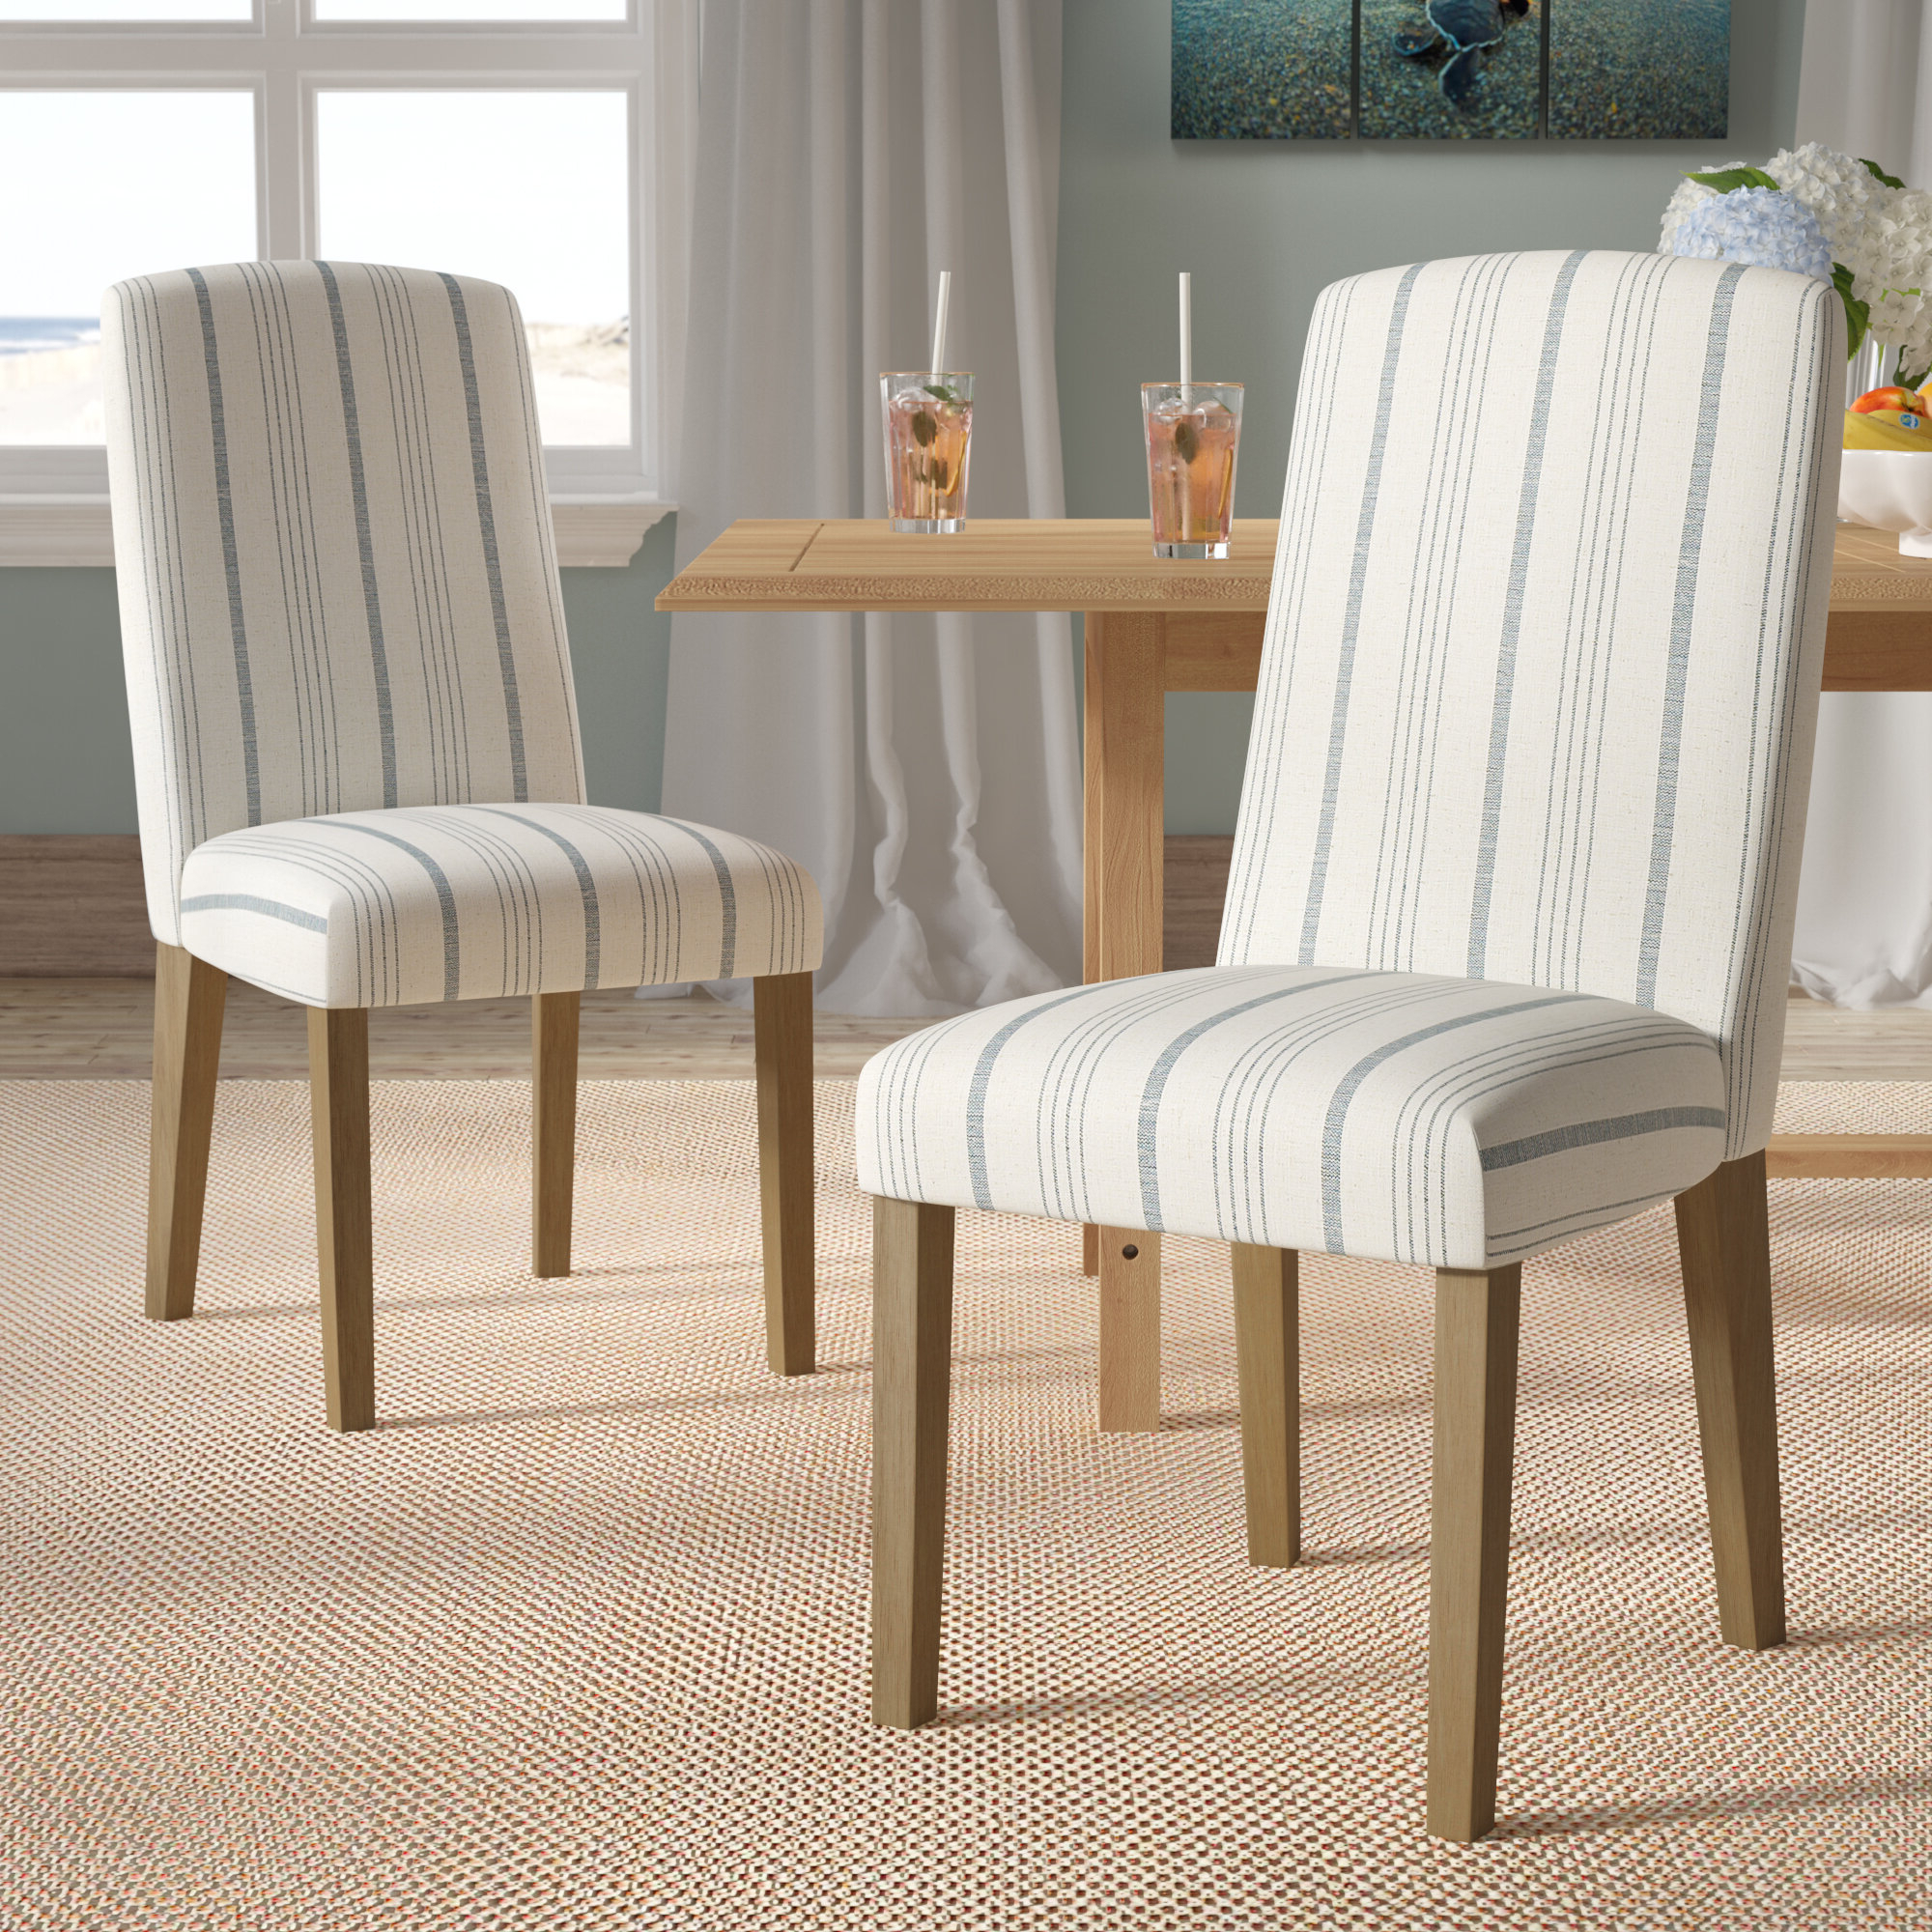 2019 Aime Upholstered Parsons Chairs In Beige With Coastal Parsons Accent Chairs You'll Love In (View 3 of 20)